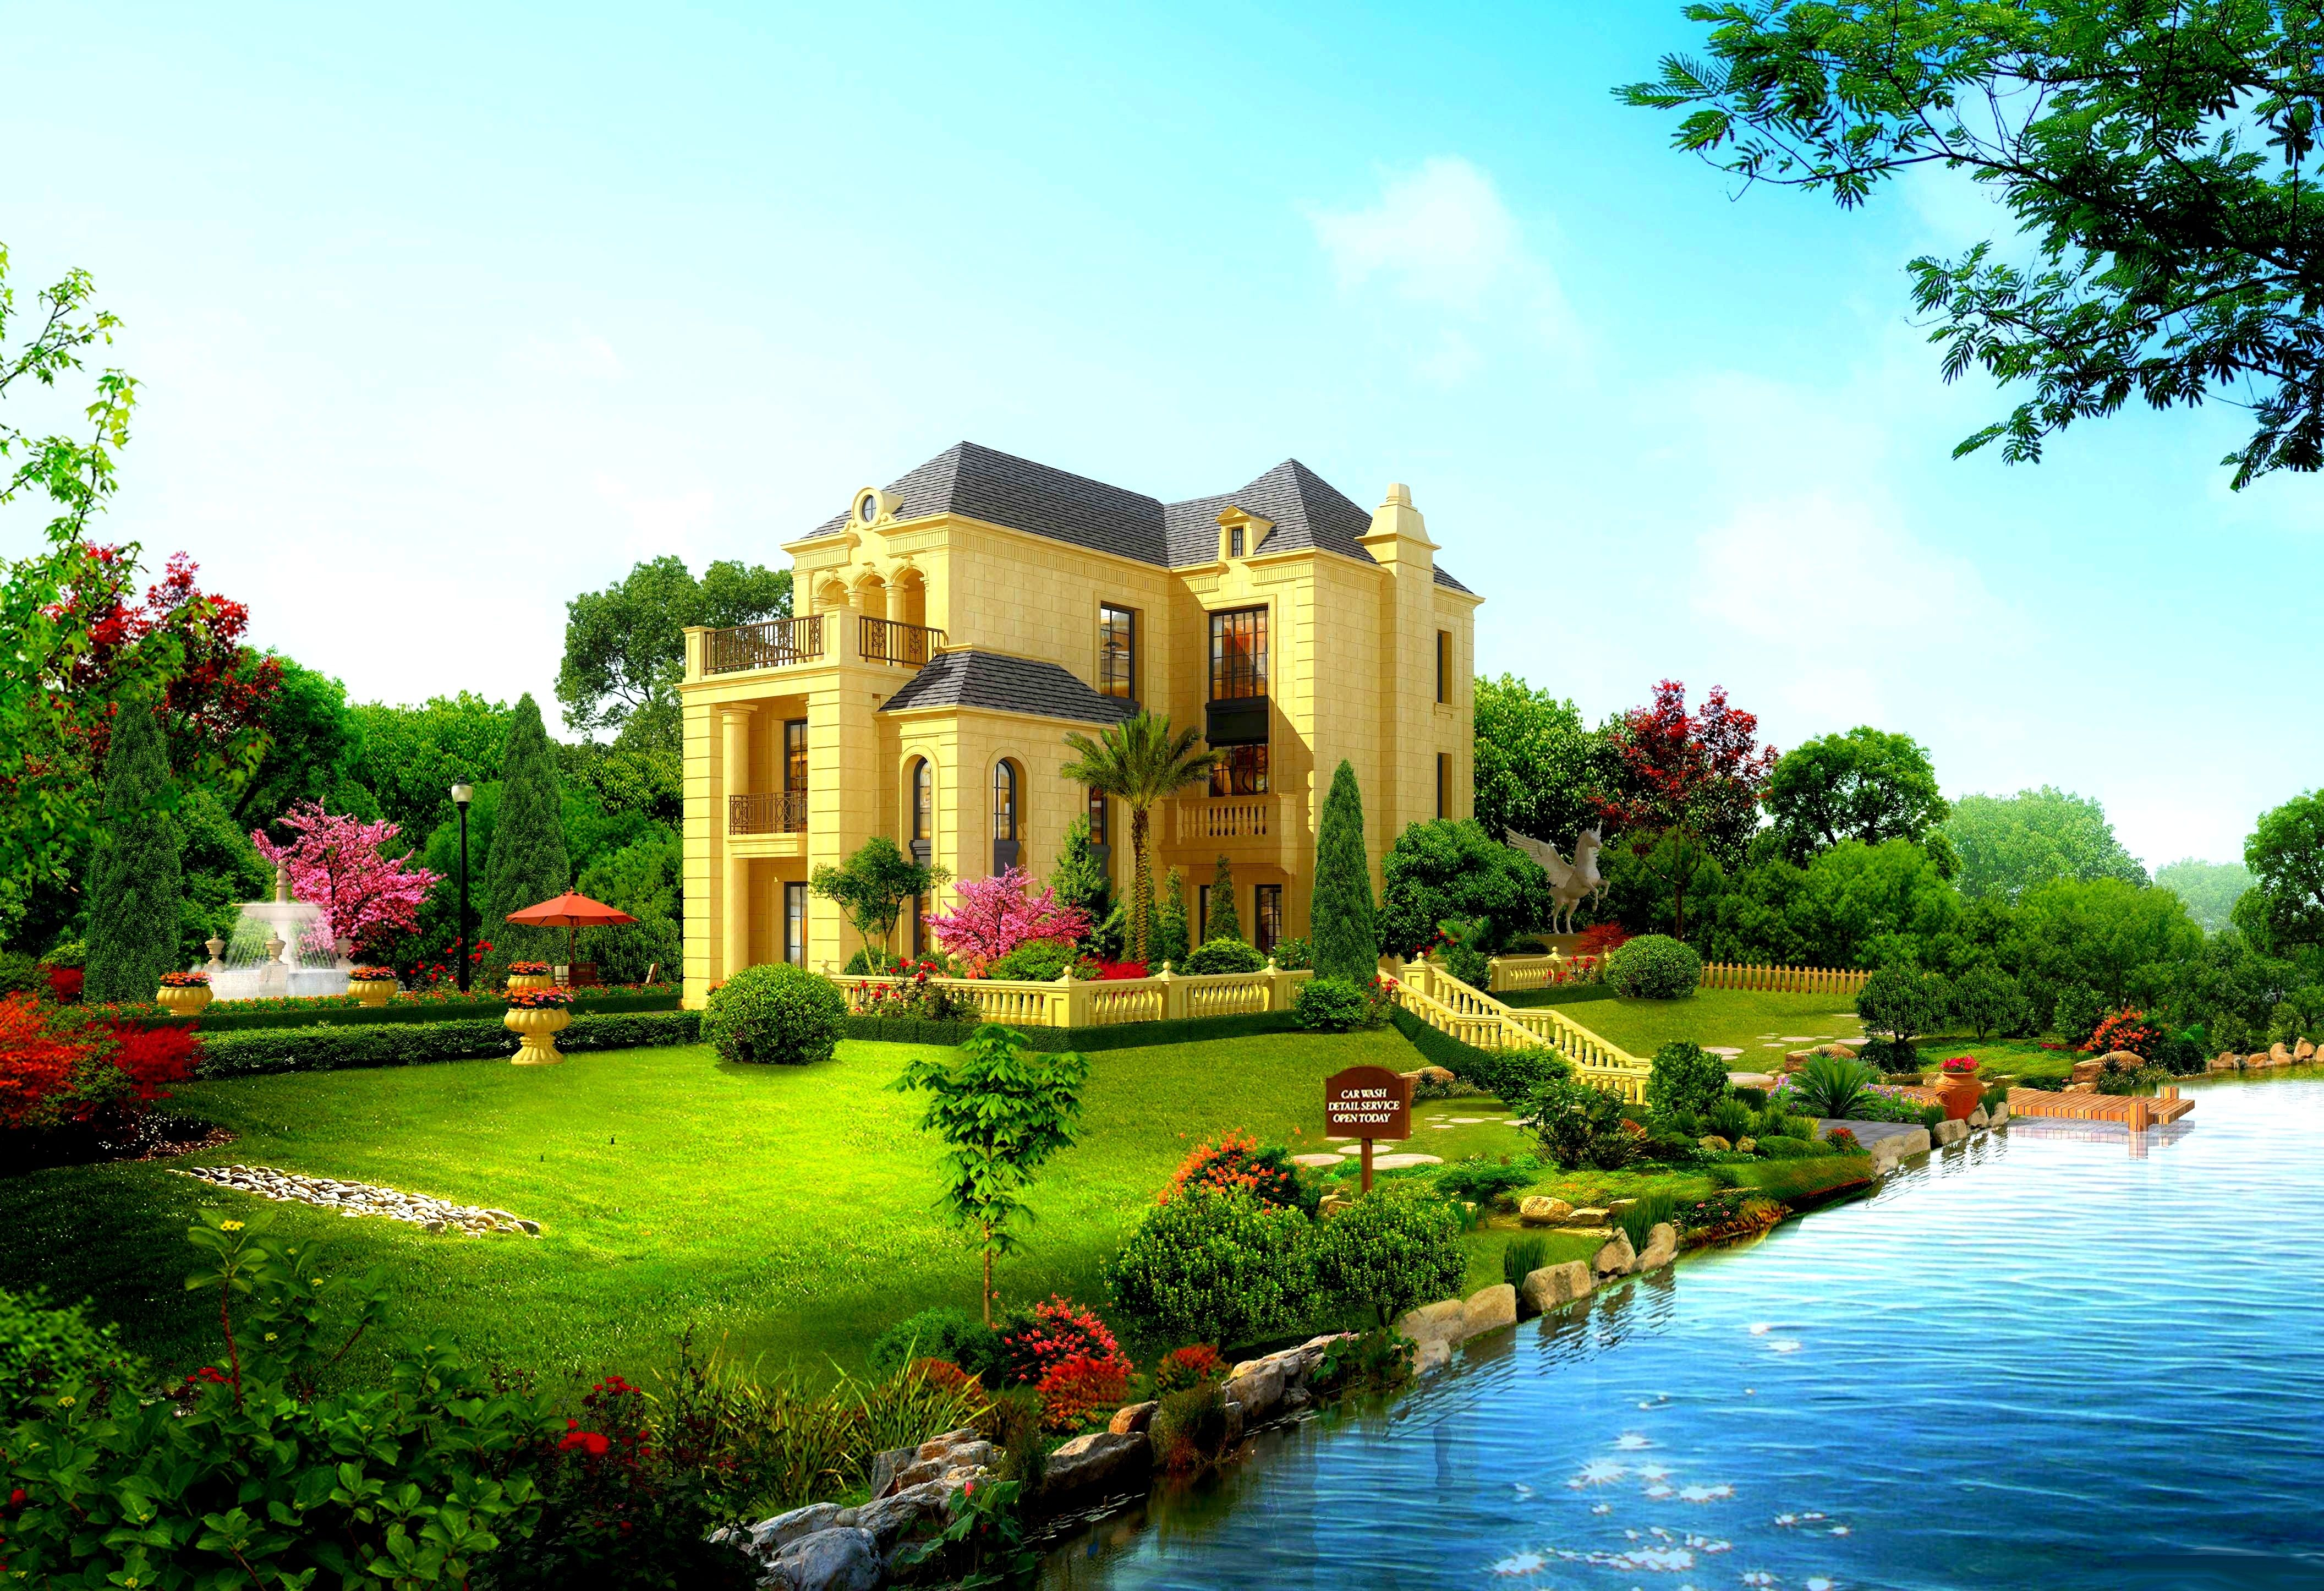 . Beautiful House Wallpapers   Wallpaper Cave